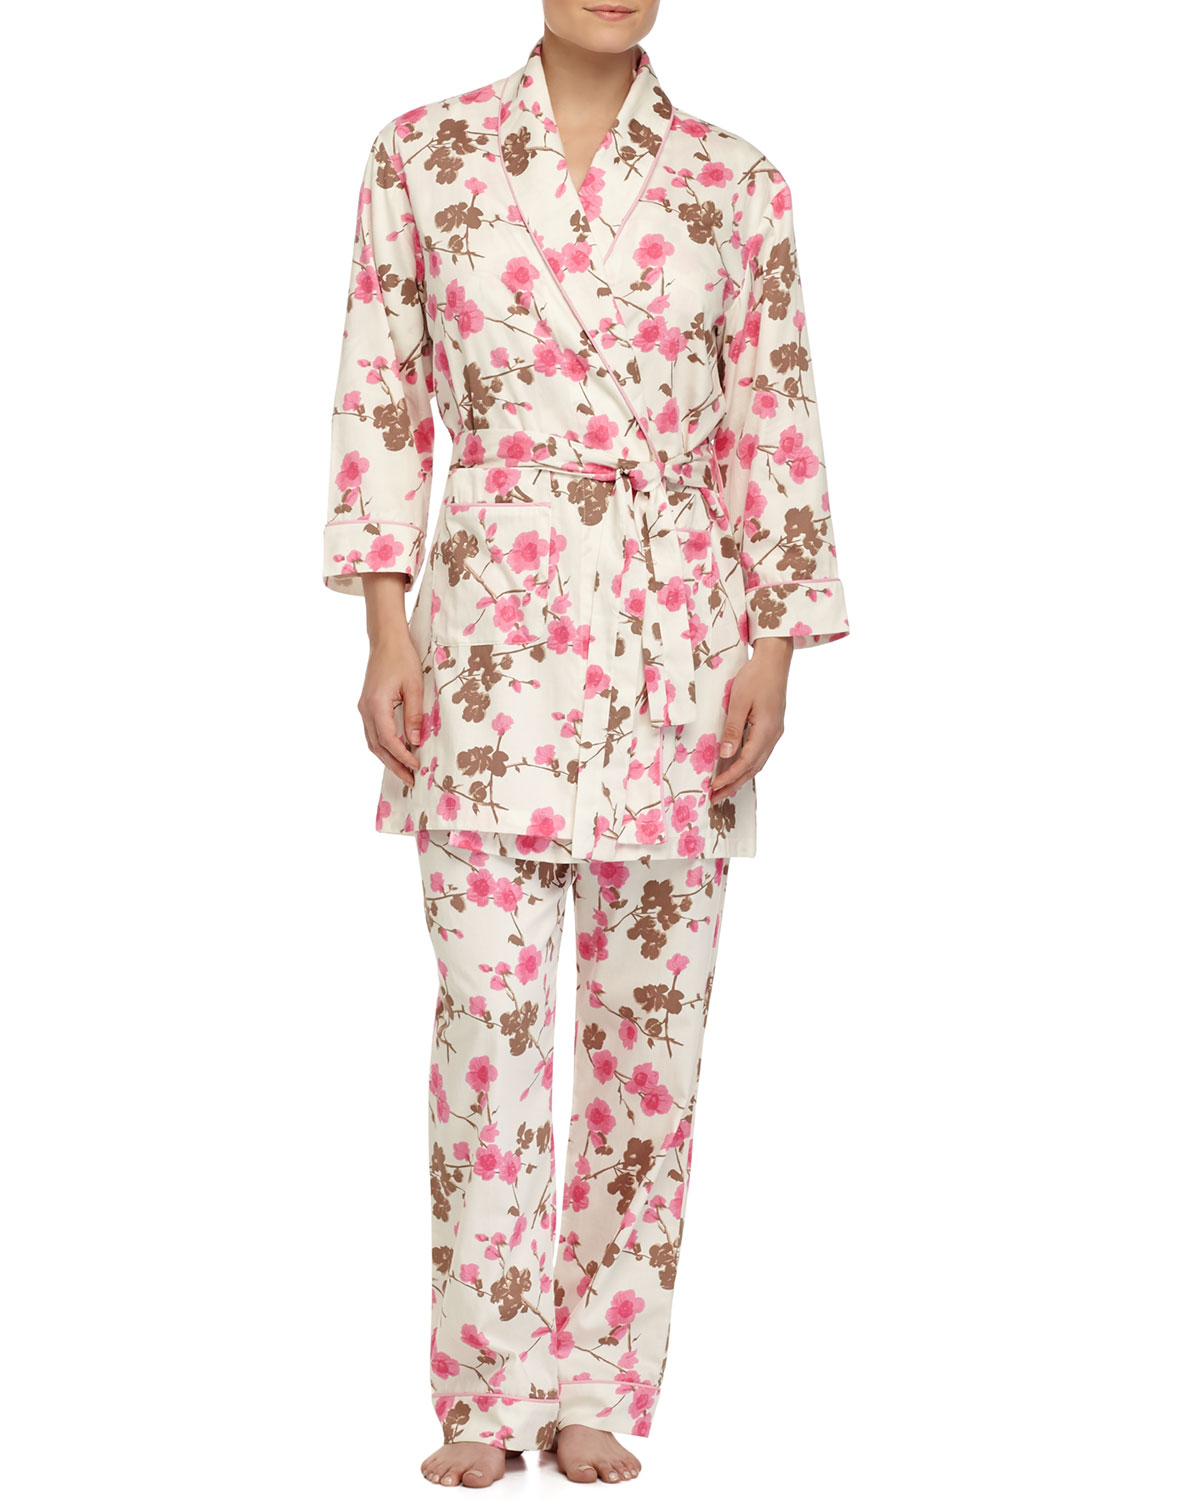 Cherry Blossom-Print Short Robe, Pink Pattern, Size: LARGE/X-LARGE - Bedhead